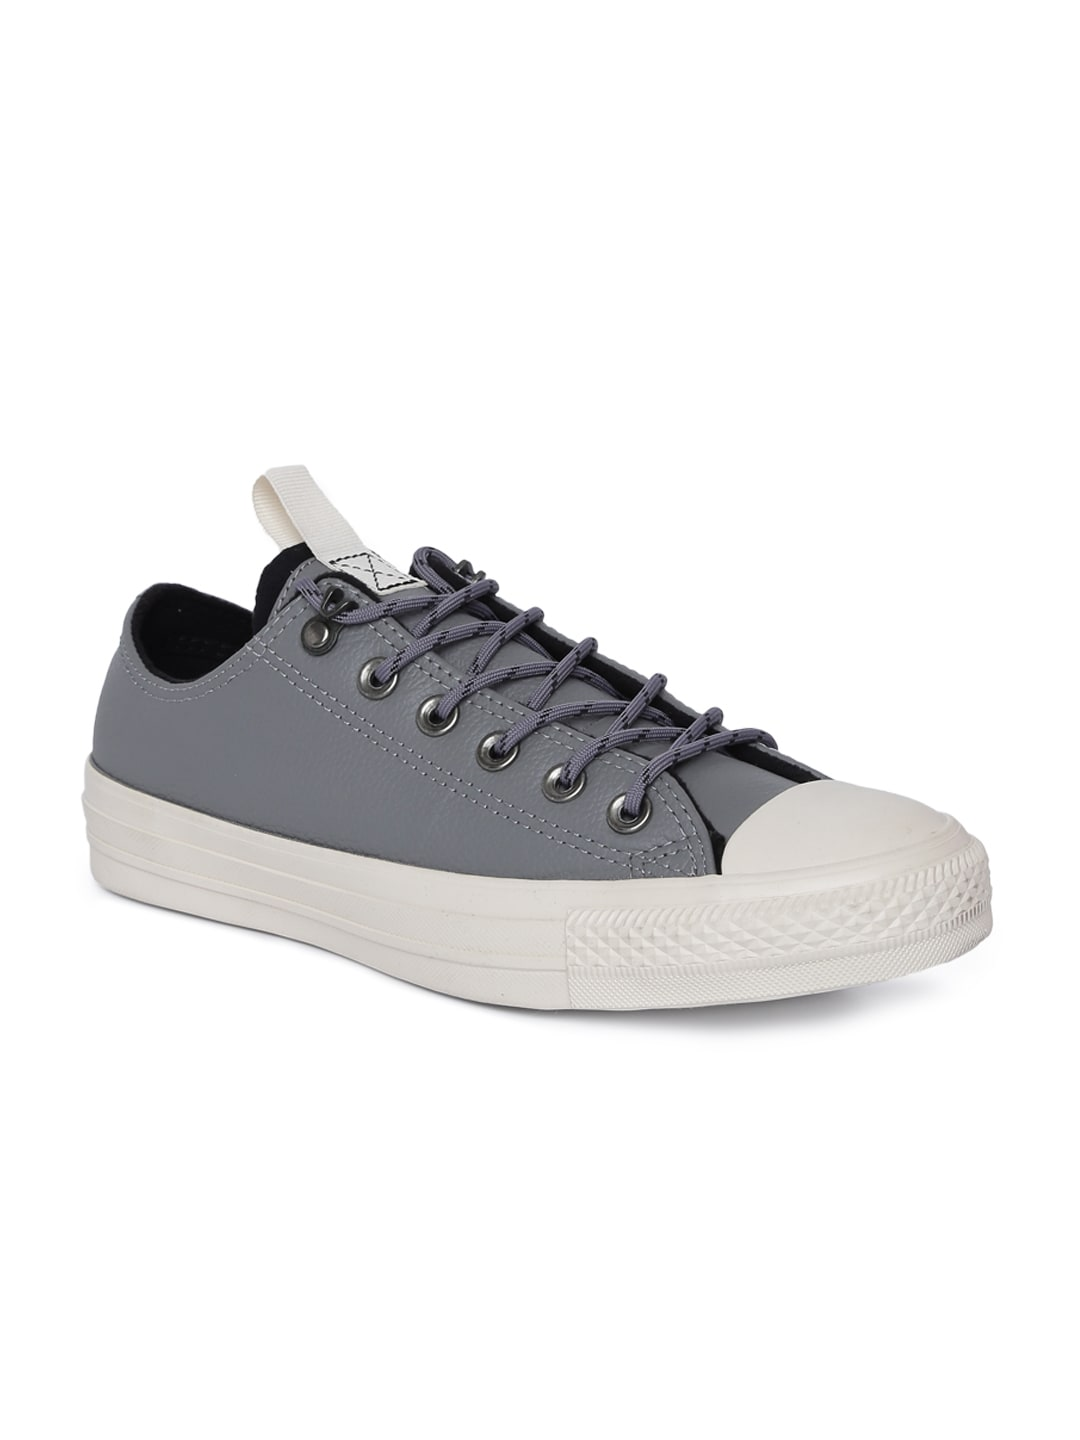 aabb0e29cd0 Converse Shoes - Buy Converse Canvas Shoes   Sneakers Online